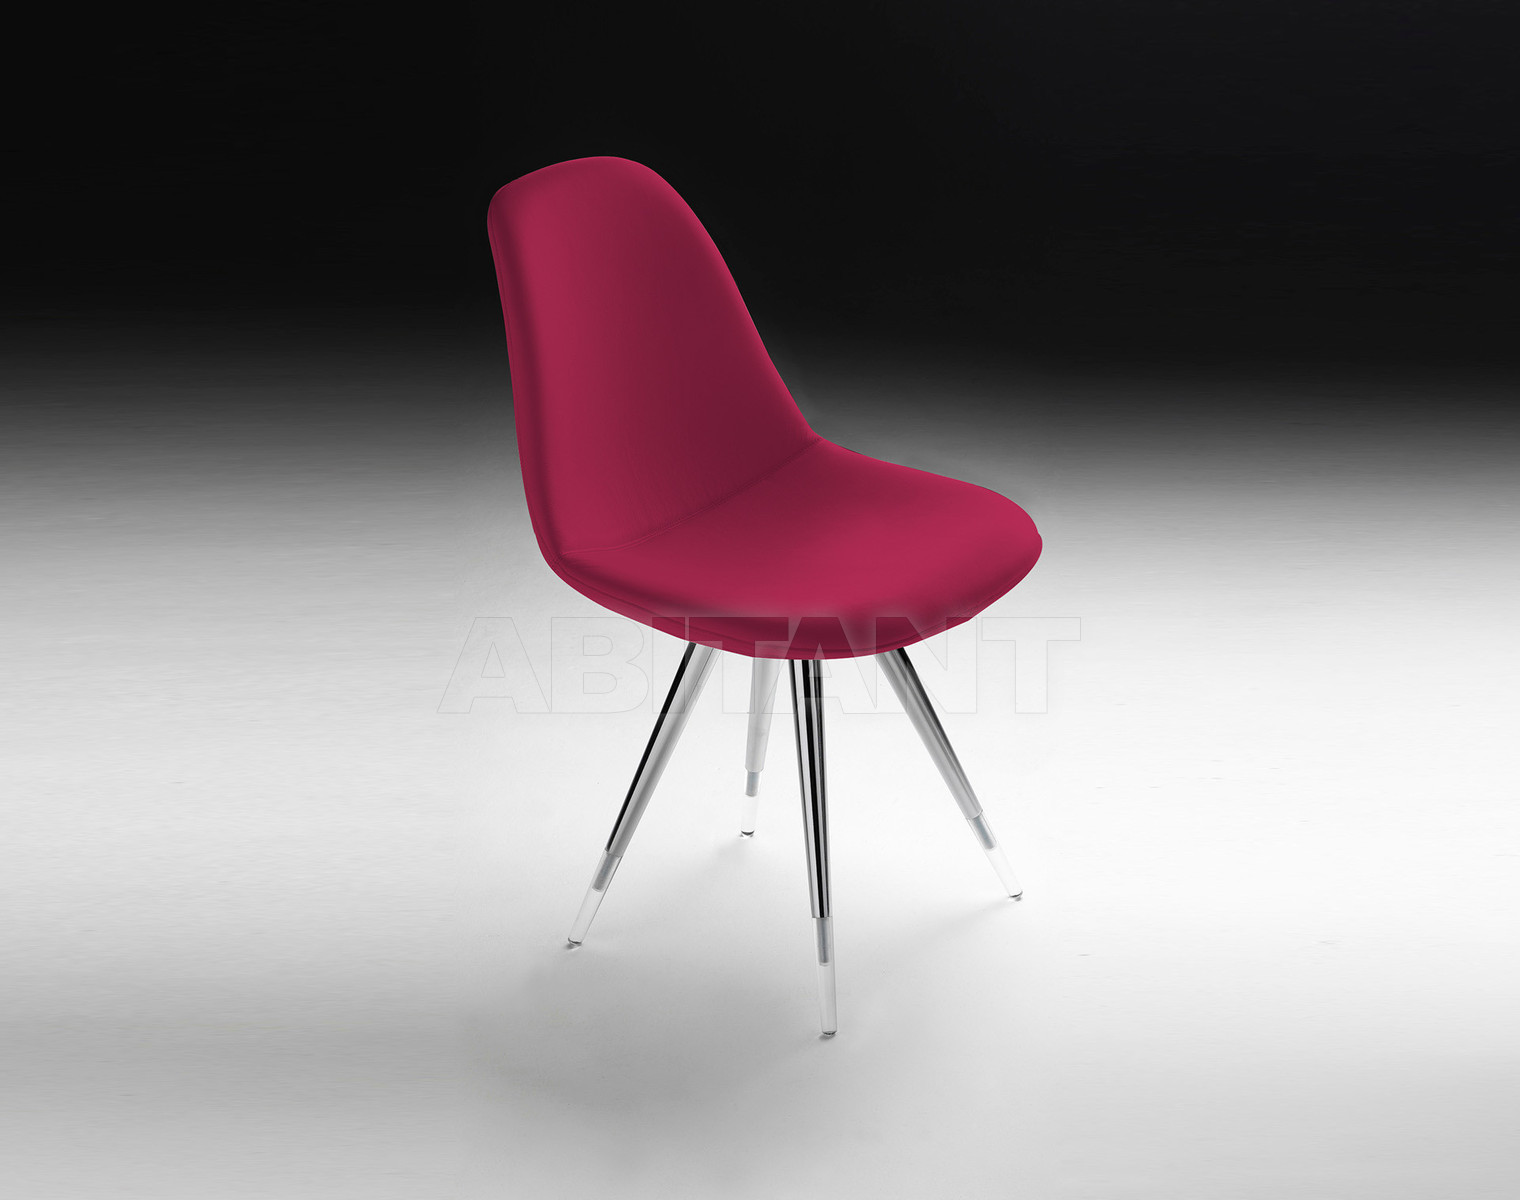 Купить Стул Kubikoff Gino Lemson & Ruud Bos Angel'POP'Chair' 12